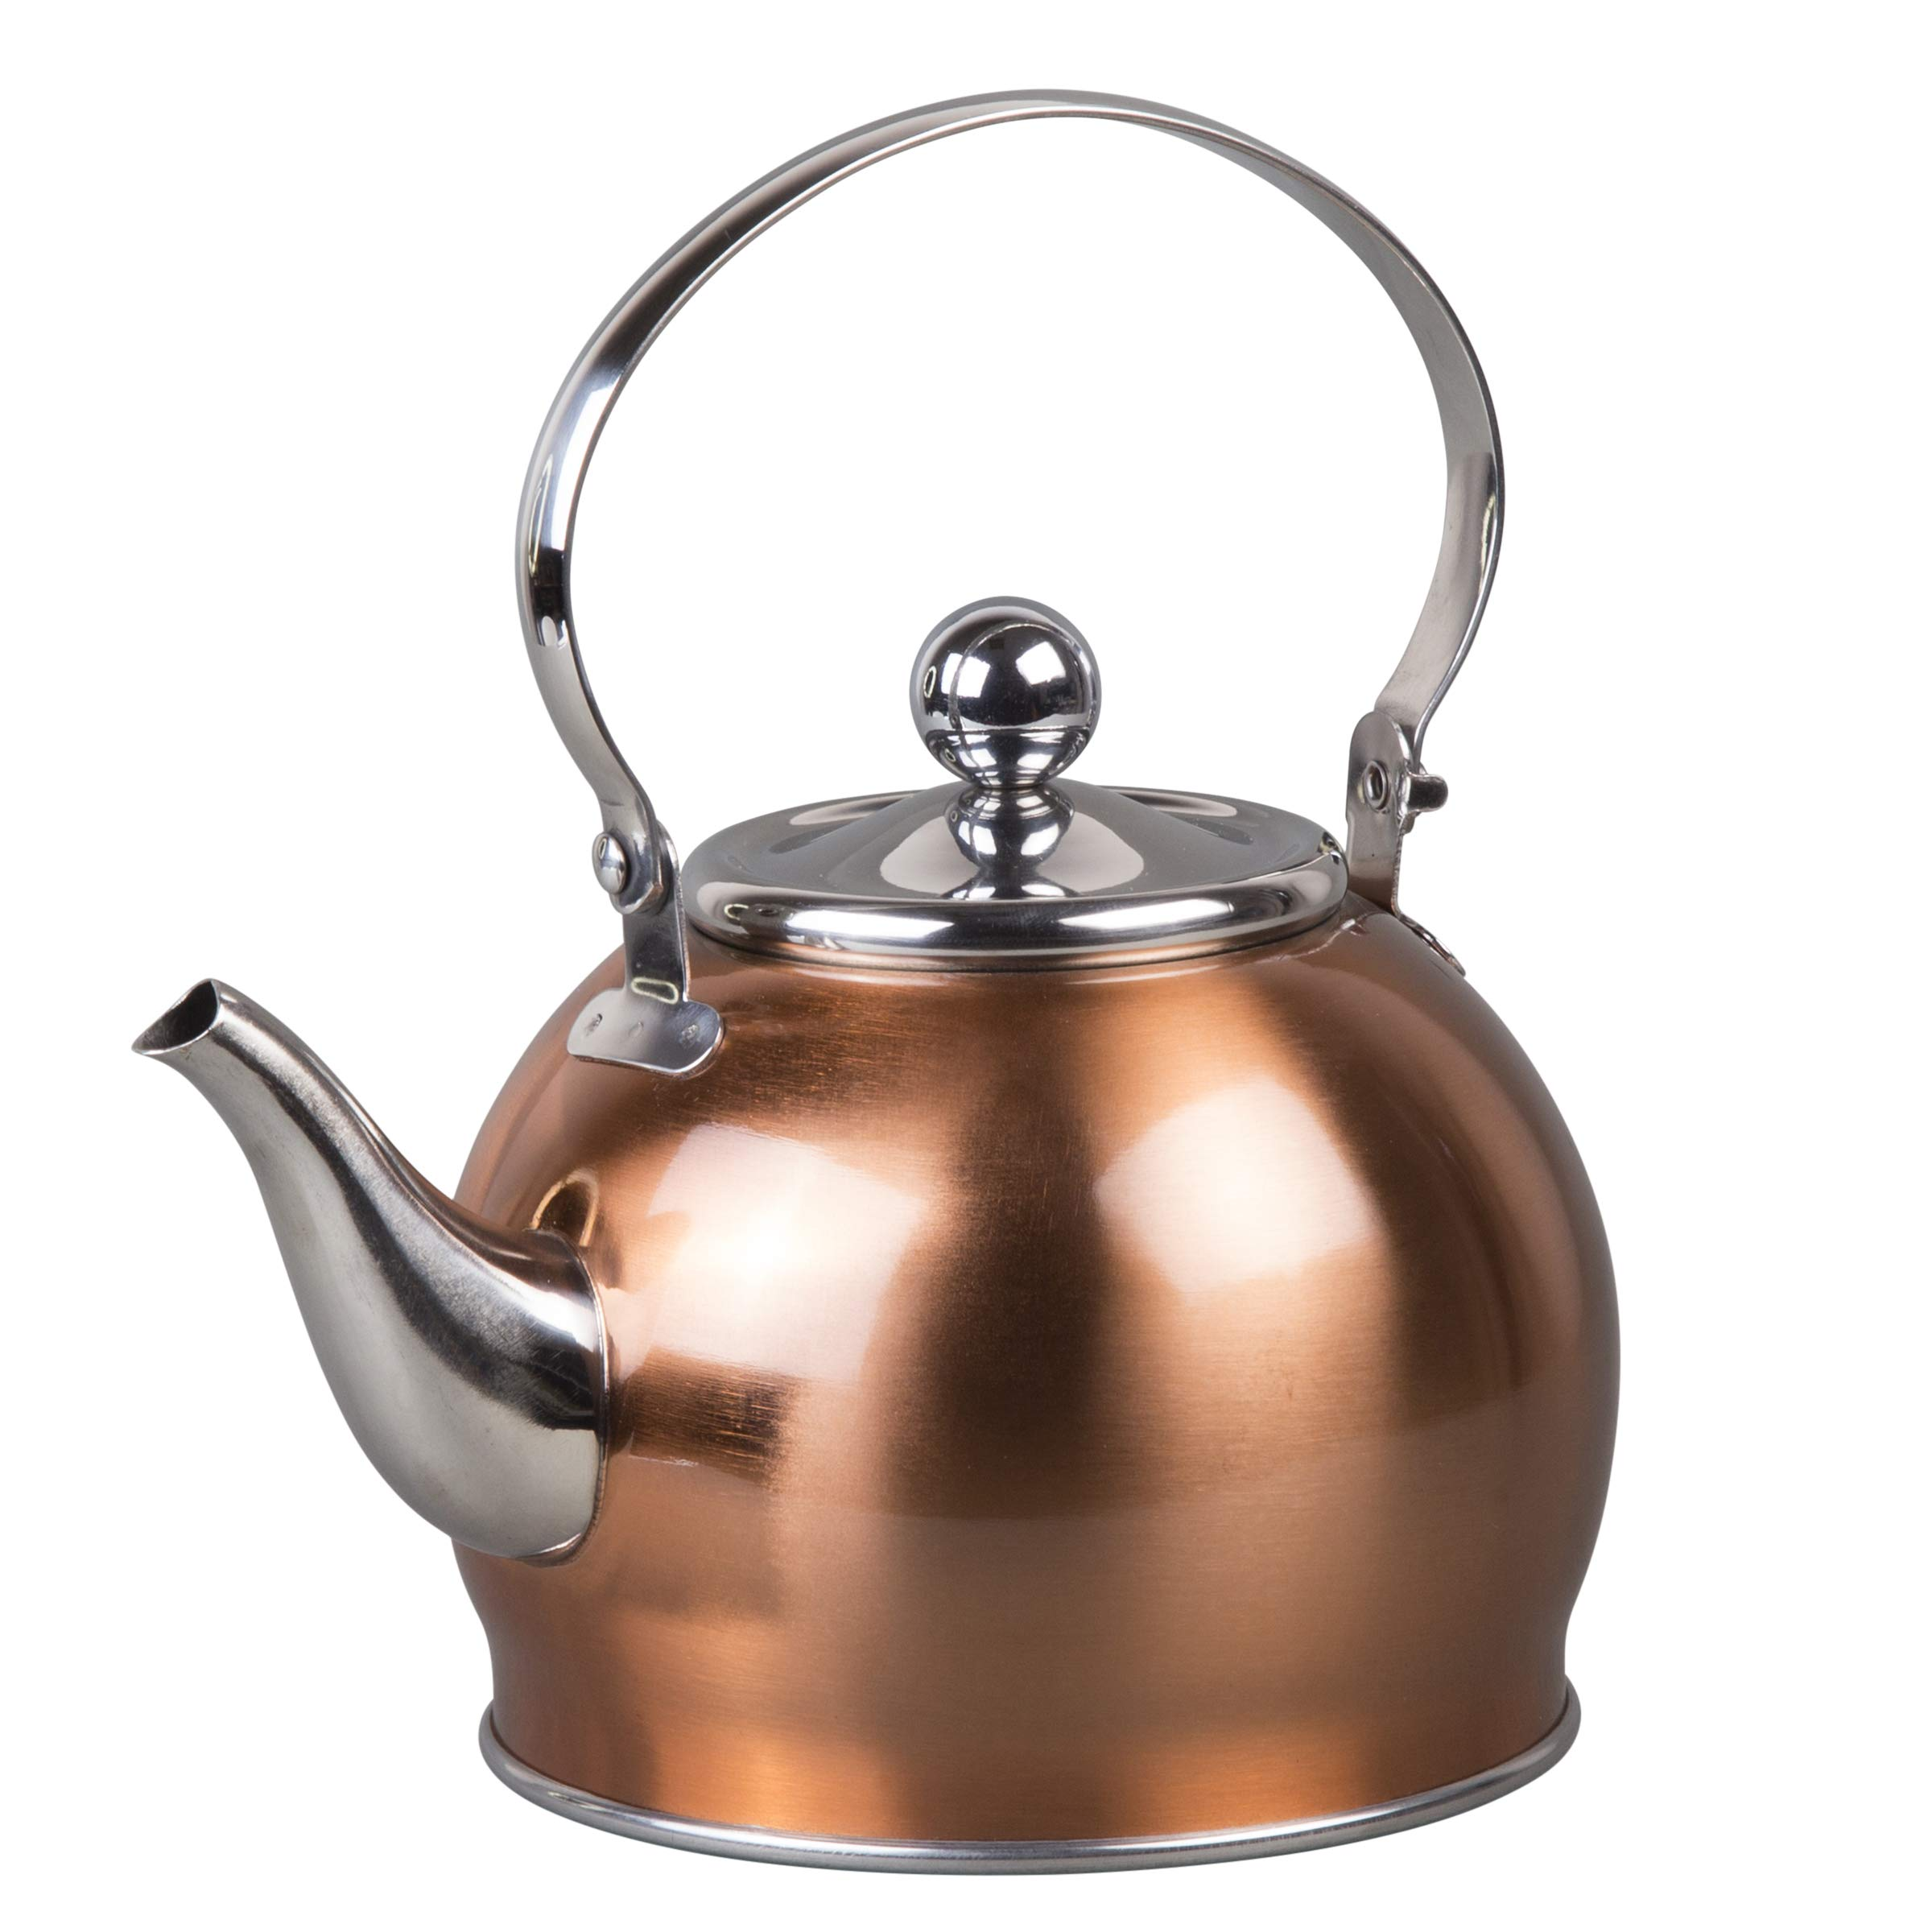 Creative Home 77094 1.0 Quart Royal-Tea Stainless Steel Kettle with Removable, Infuser Basket, Folding Handle